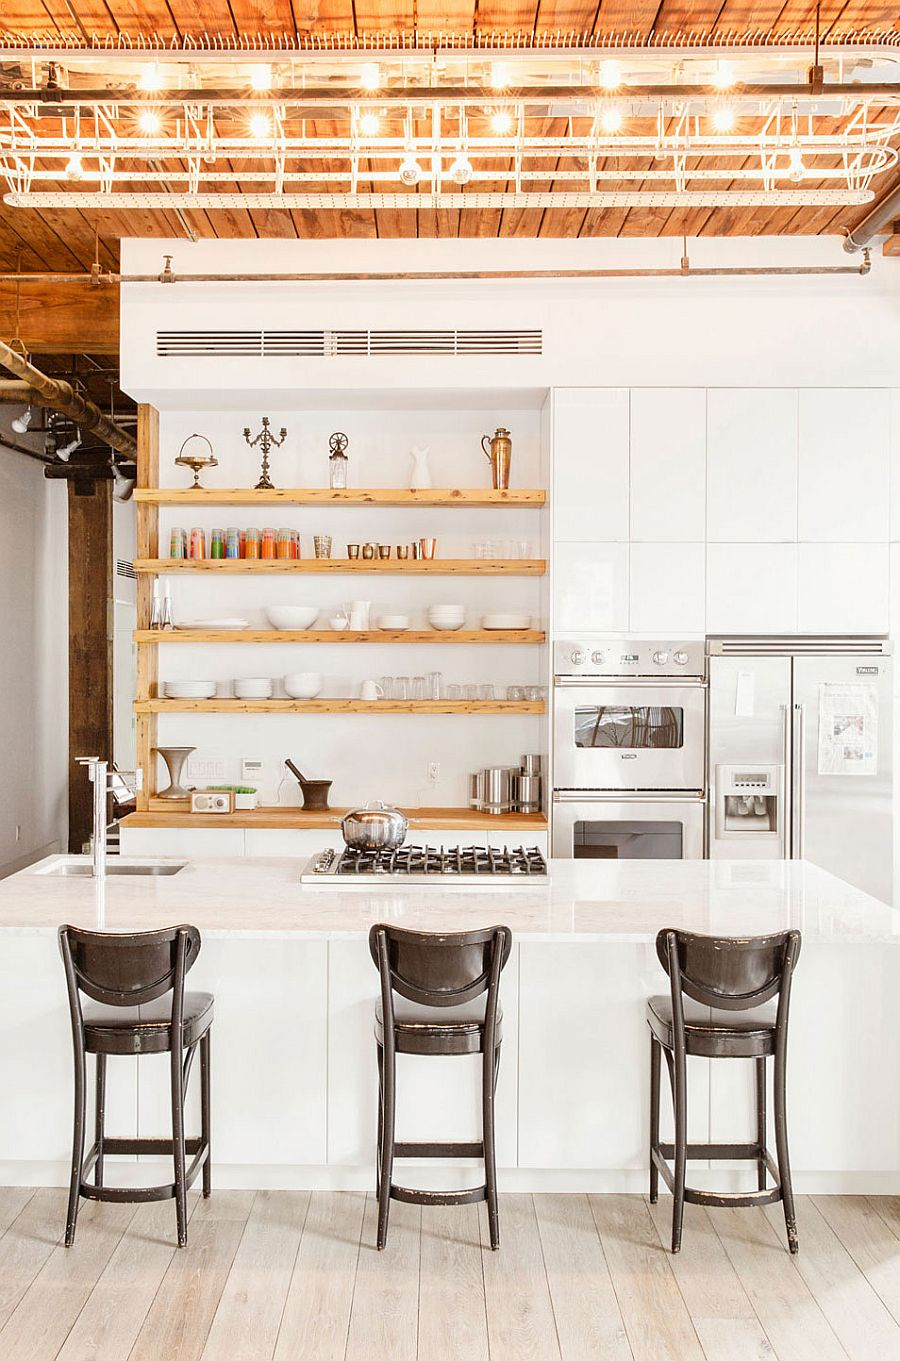 Williamsburg Loft Industrial Nyc Home Designed For A Chef